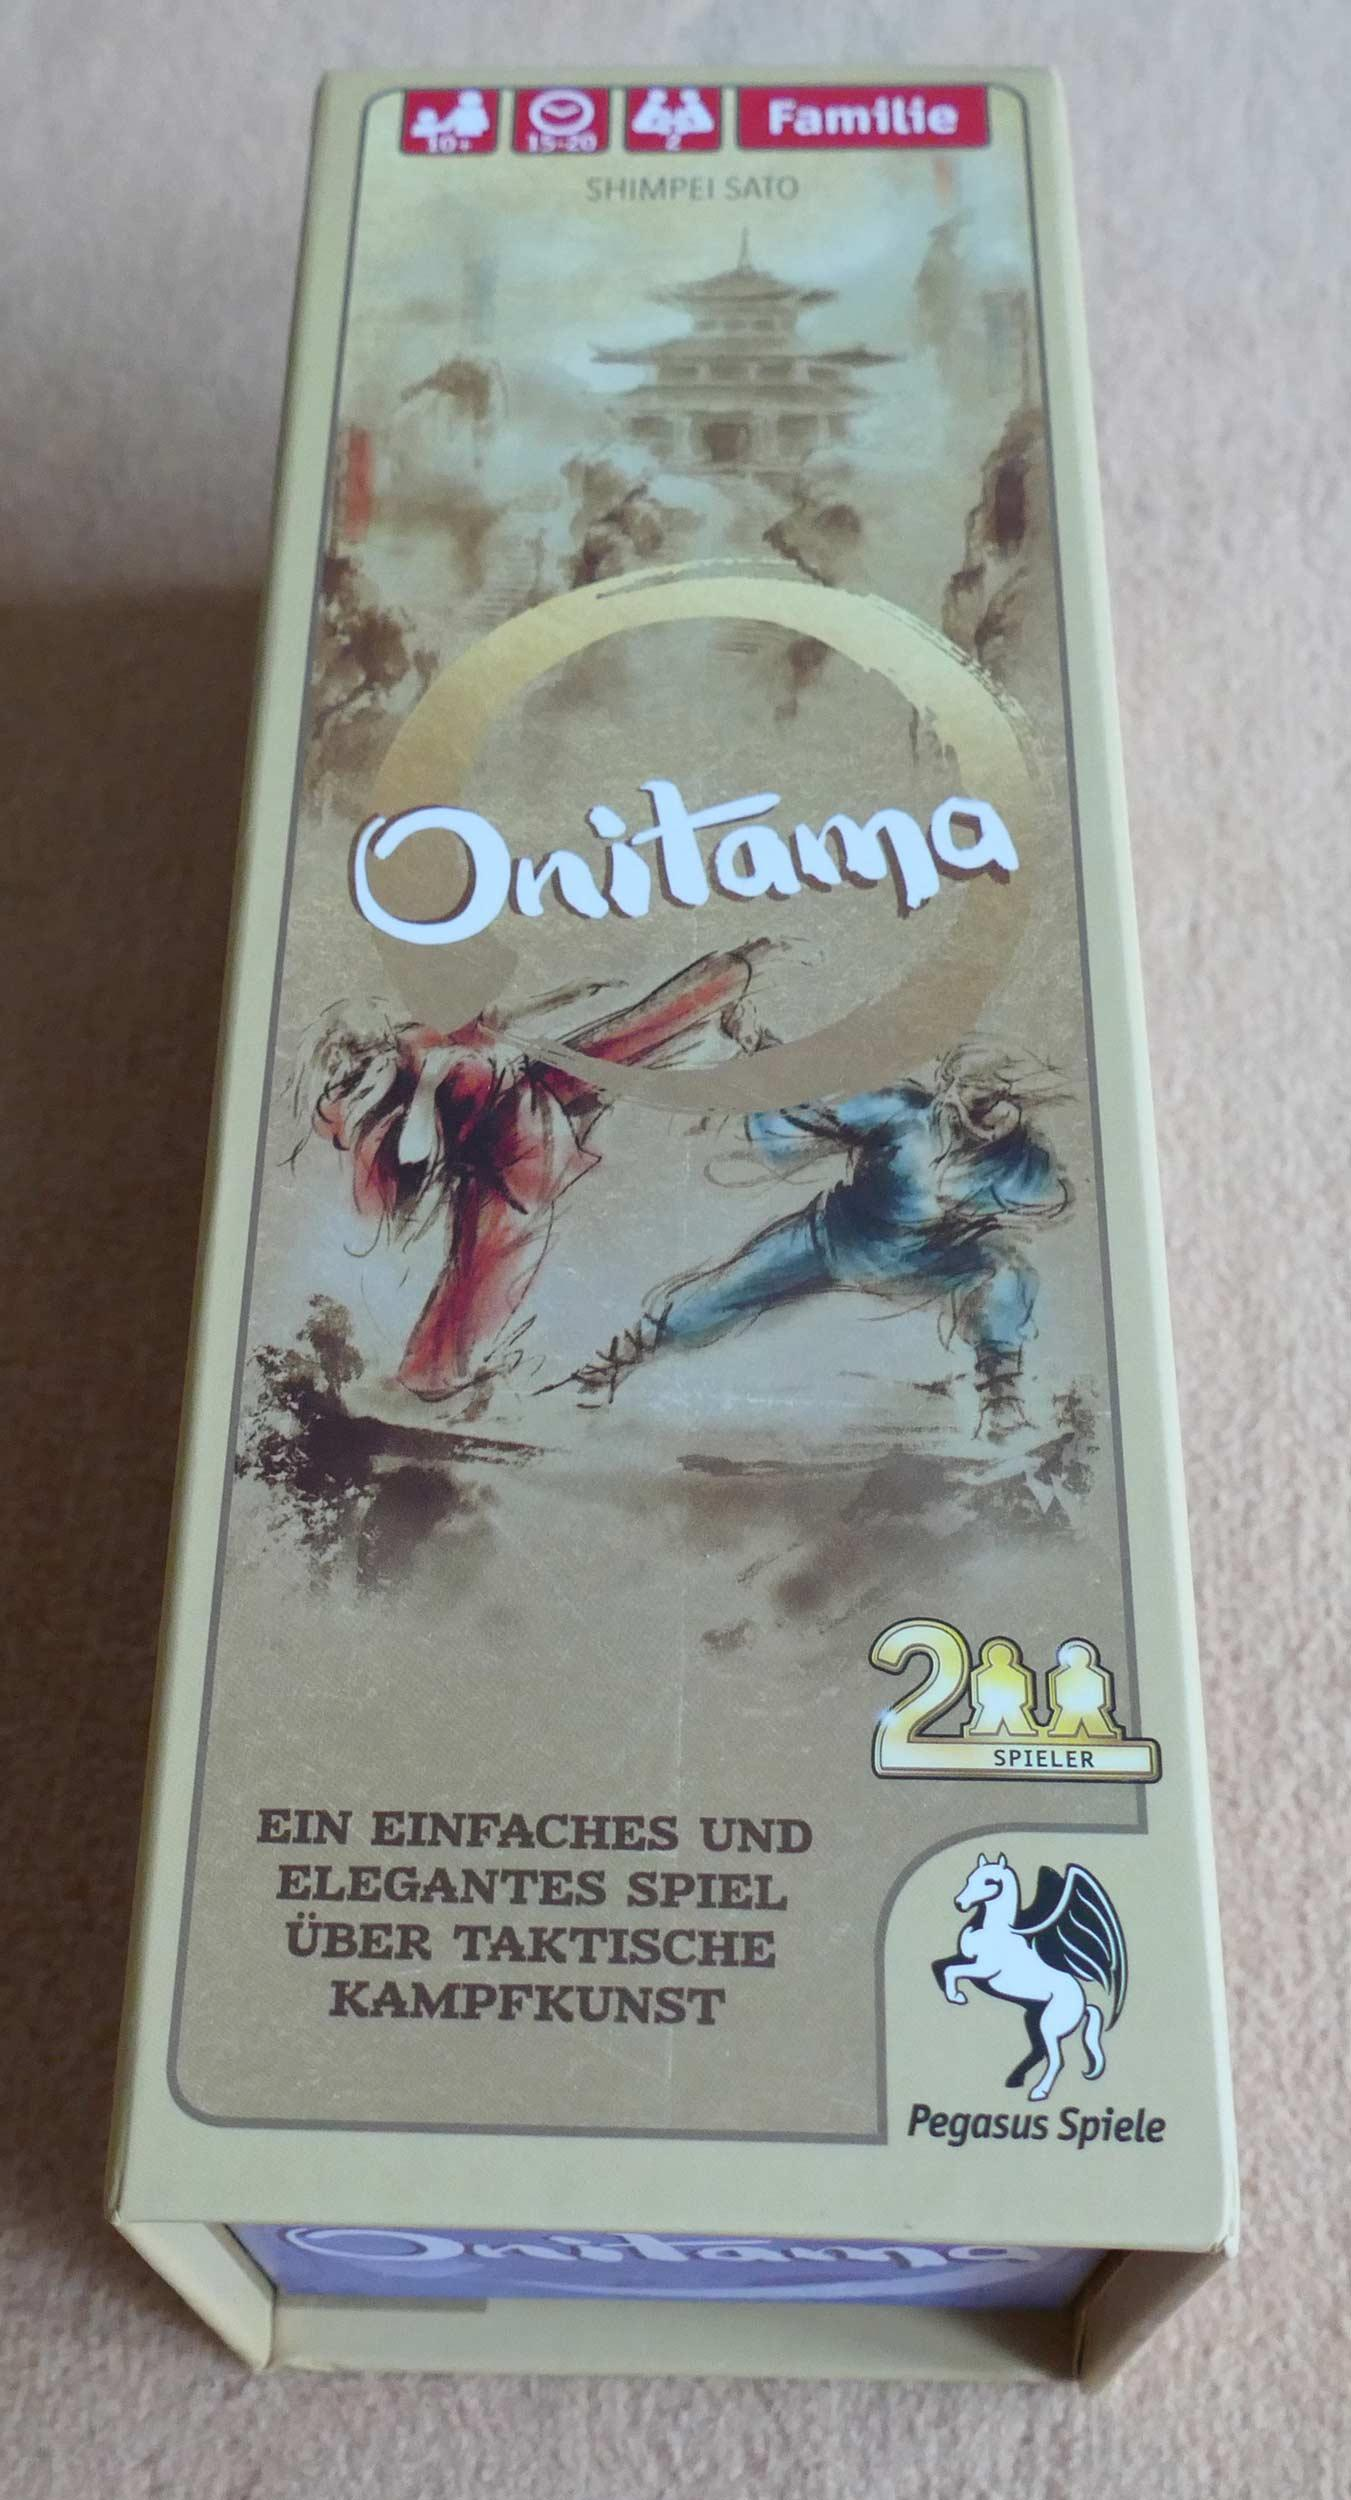 Rezension zu Onitama